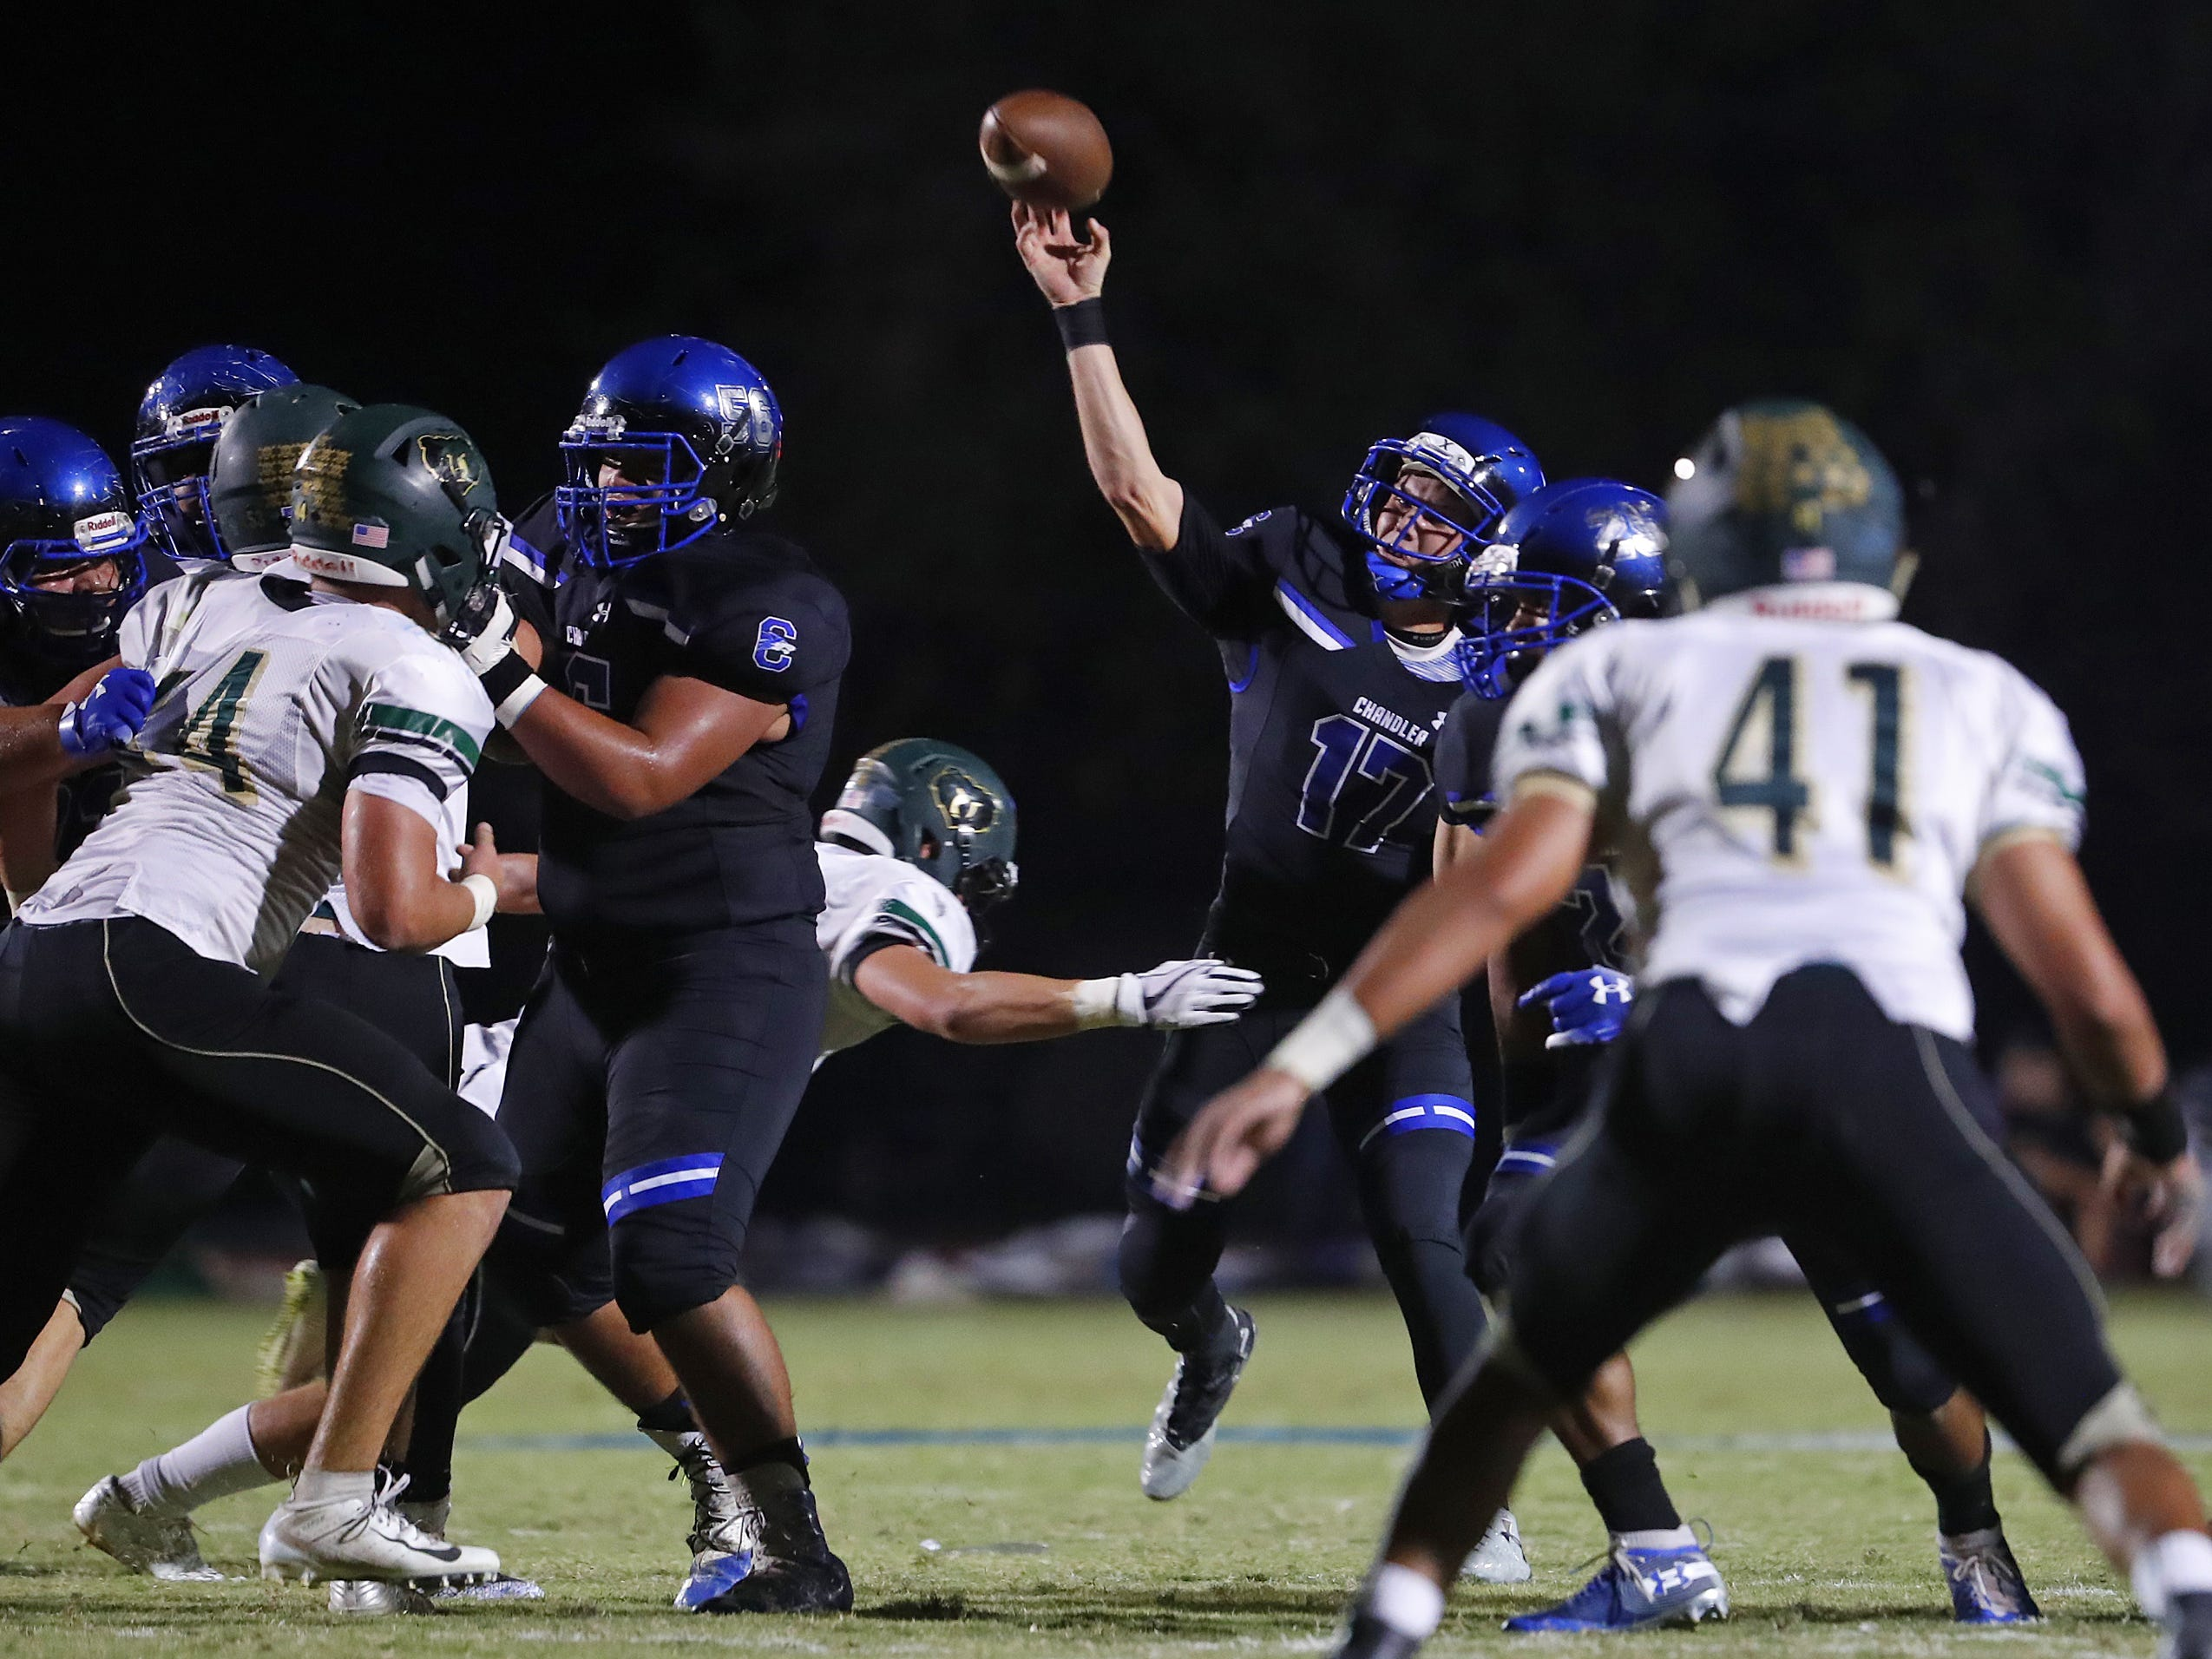 Chandler's Jacob Conover (17) throws a pass against Basha at Chandler High School in Chandler, Ariz. on October 12, 2018.